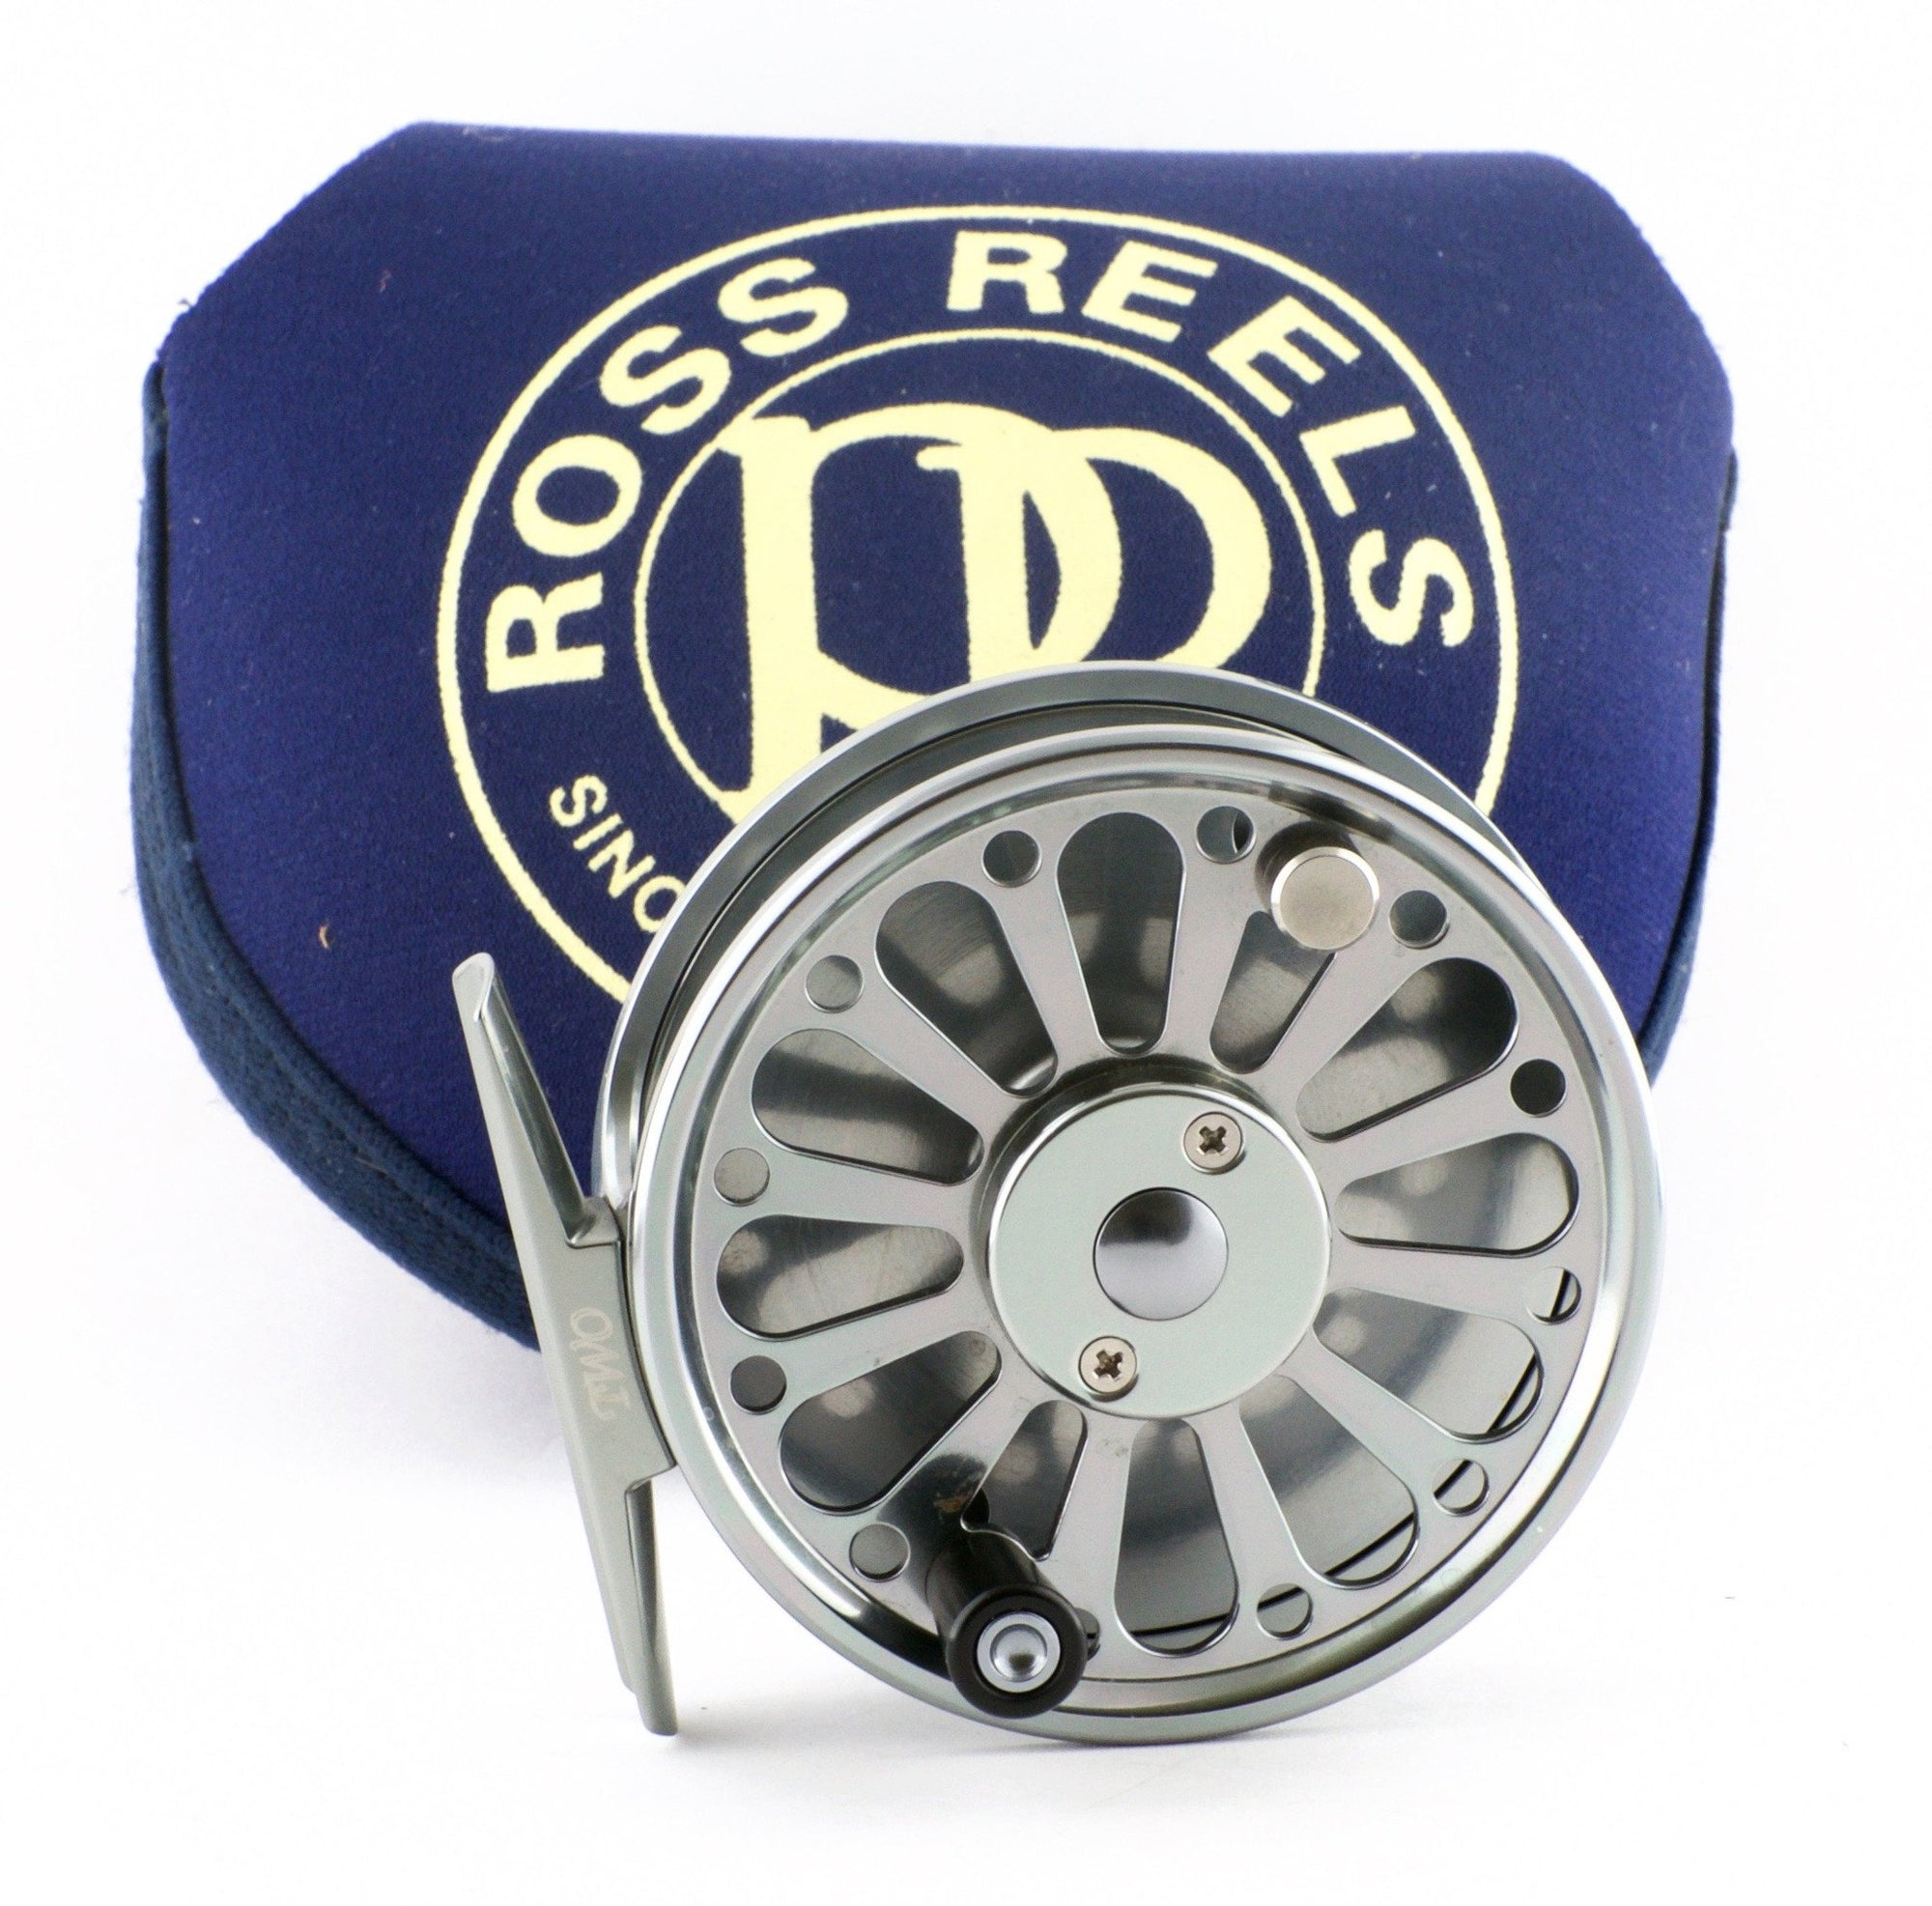 Ross San Miguel 2 Fly Reel - 25th Anniversary Platinum Edition